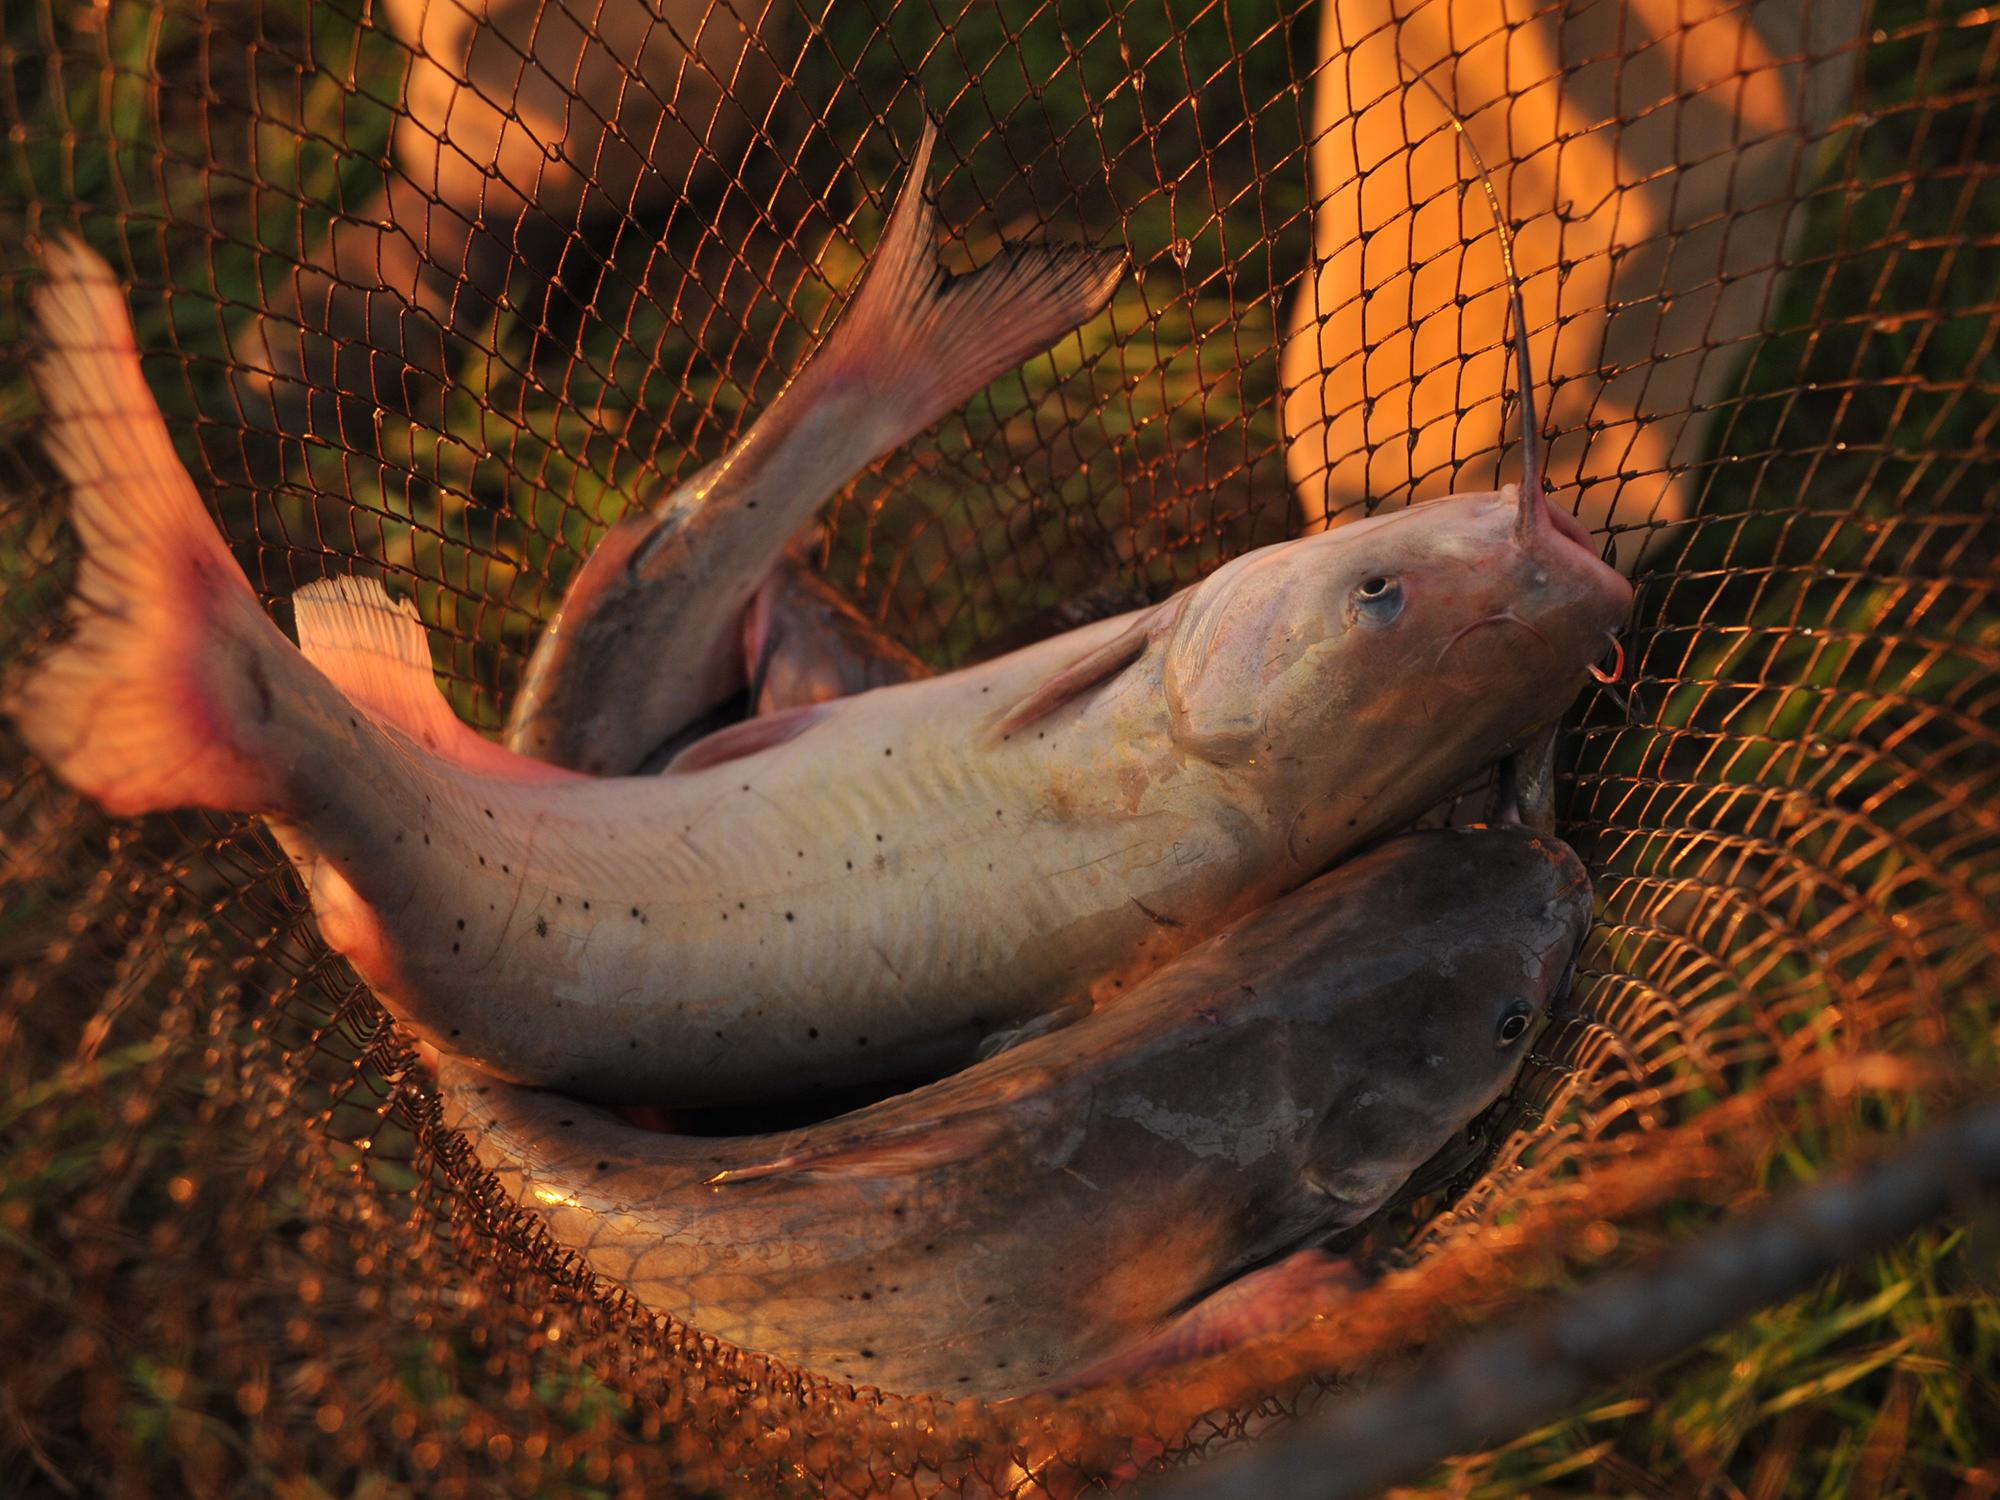 Two catfish with black spots and pink tails in a net.